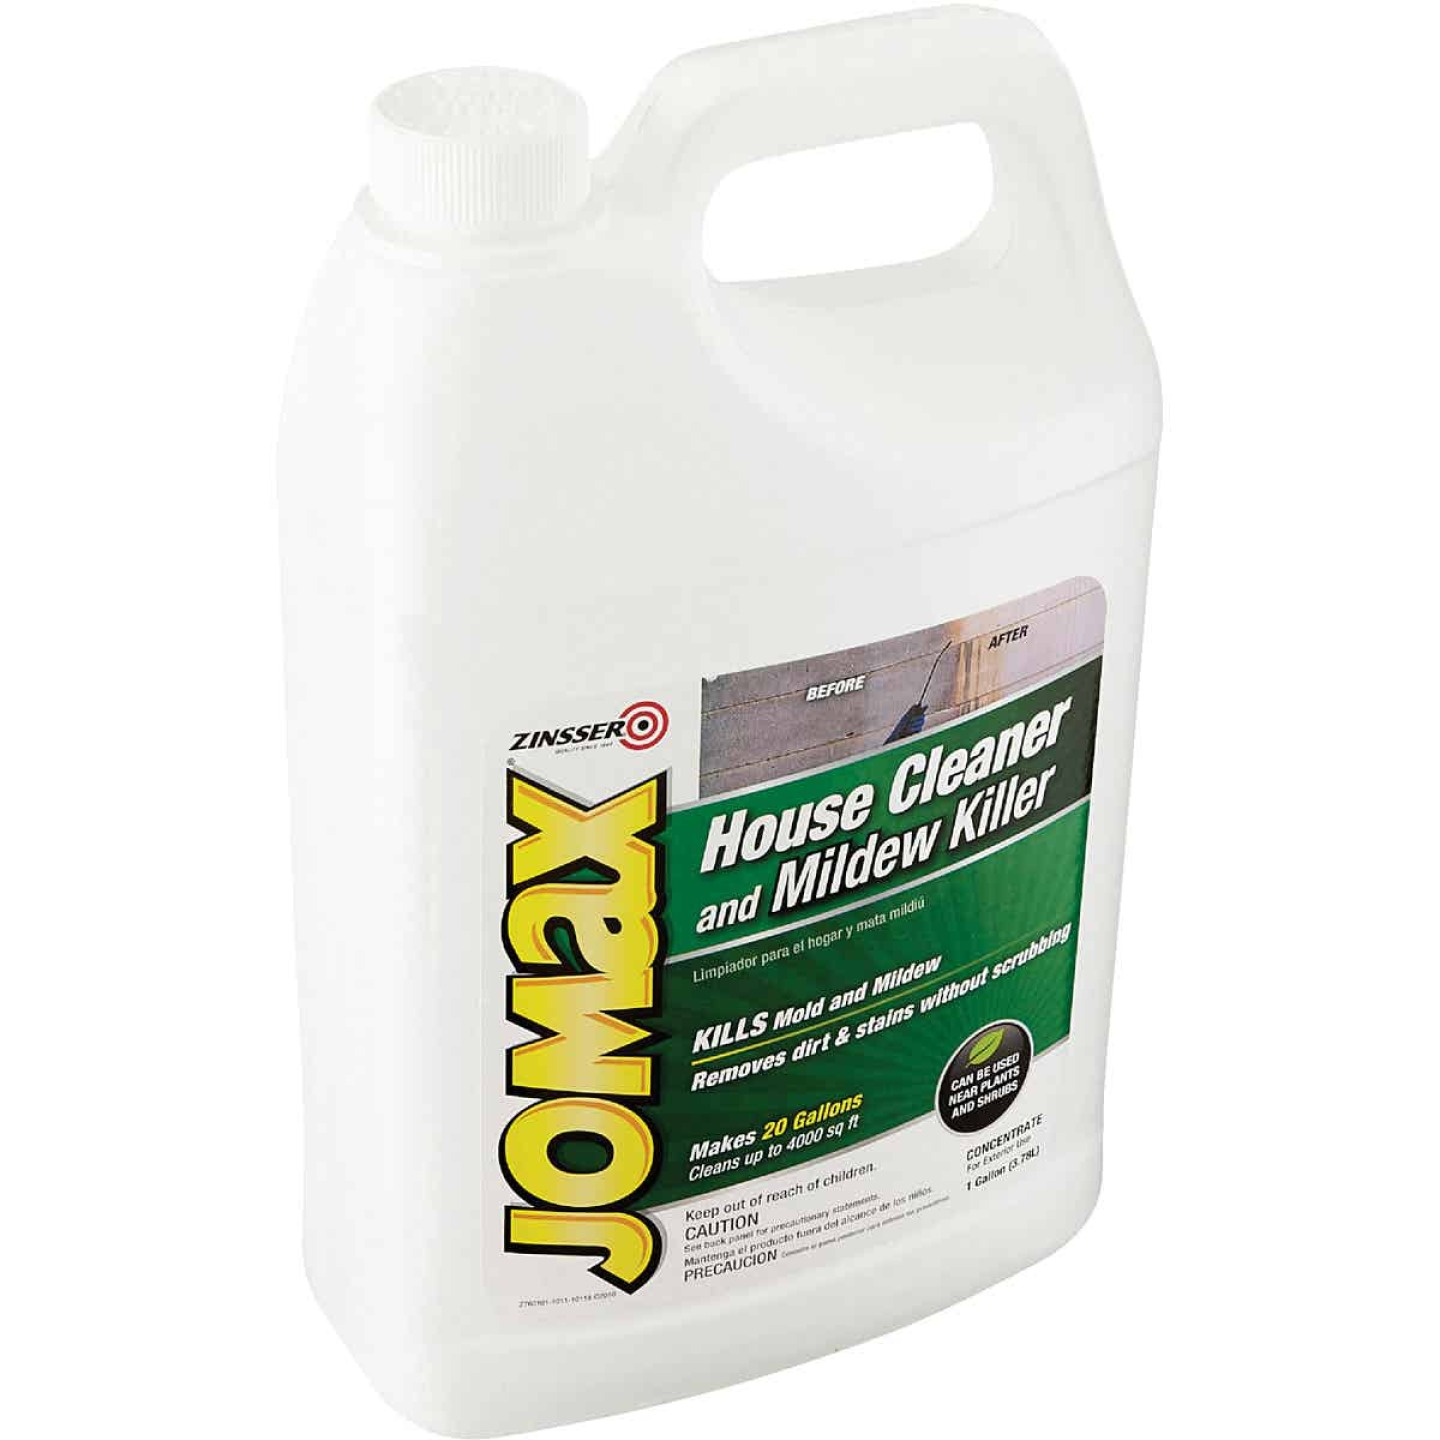 Zinsser Jomax House Cleaner and Mildew Killer, 1 Gal. Image 3